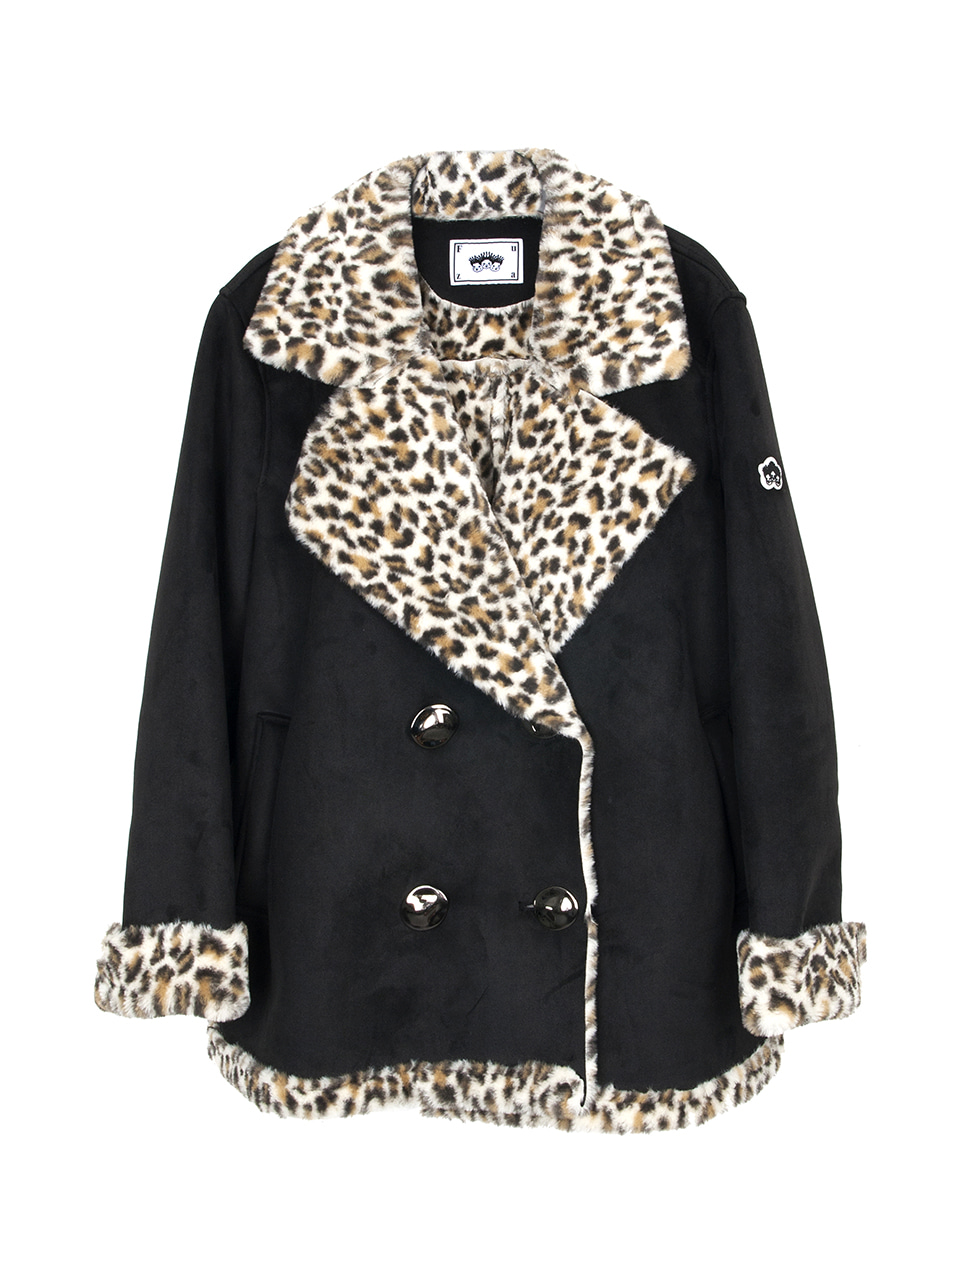 [퓨자]LEOPARD FUR BLACK SUEDE JACKET